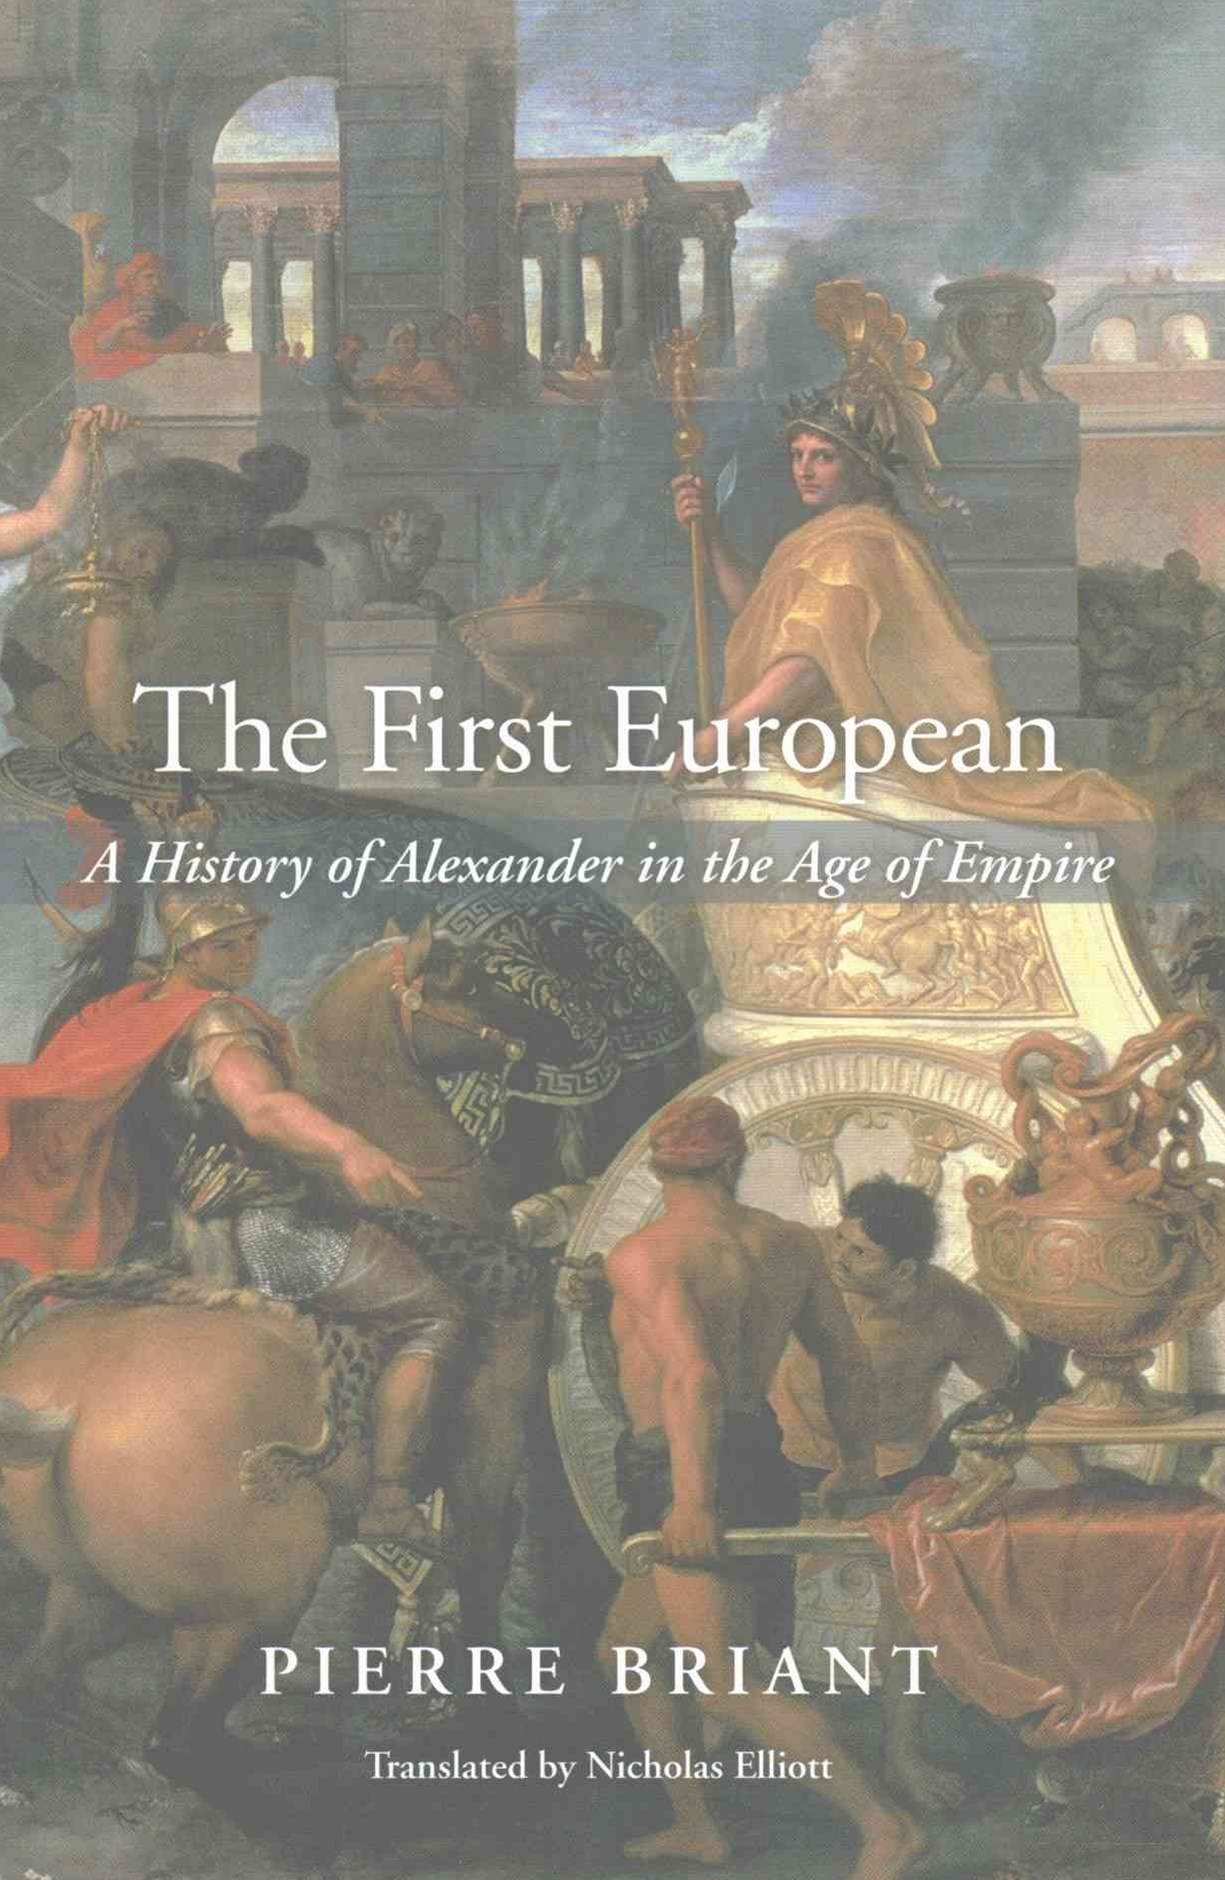 The First European